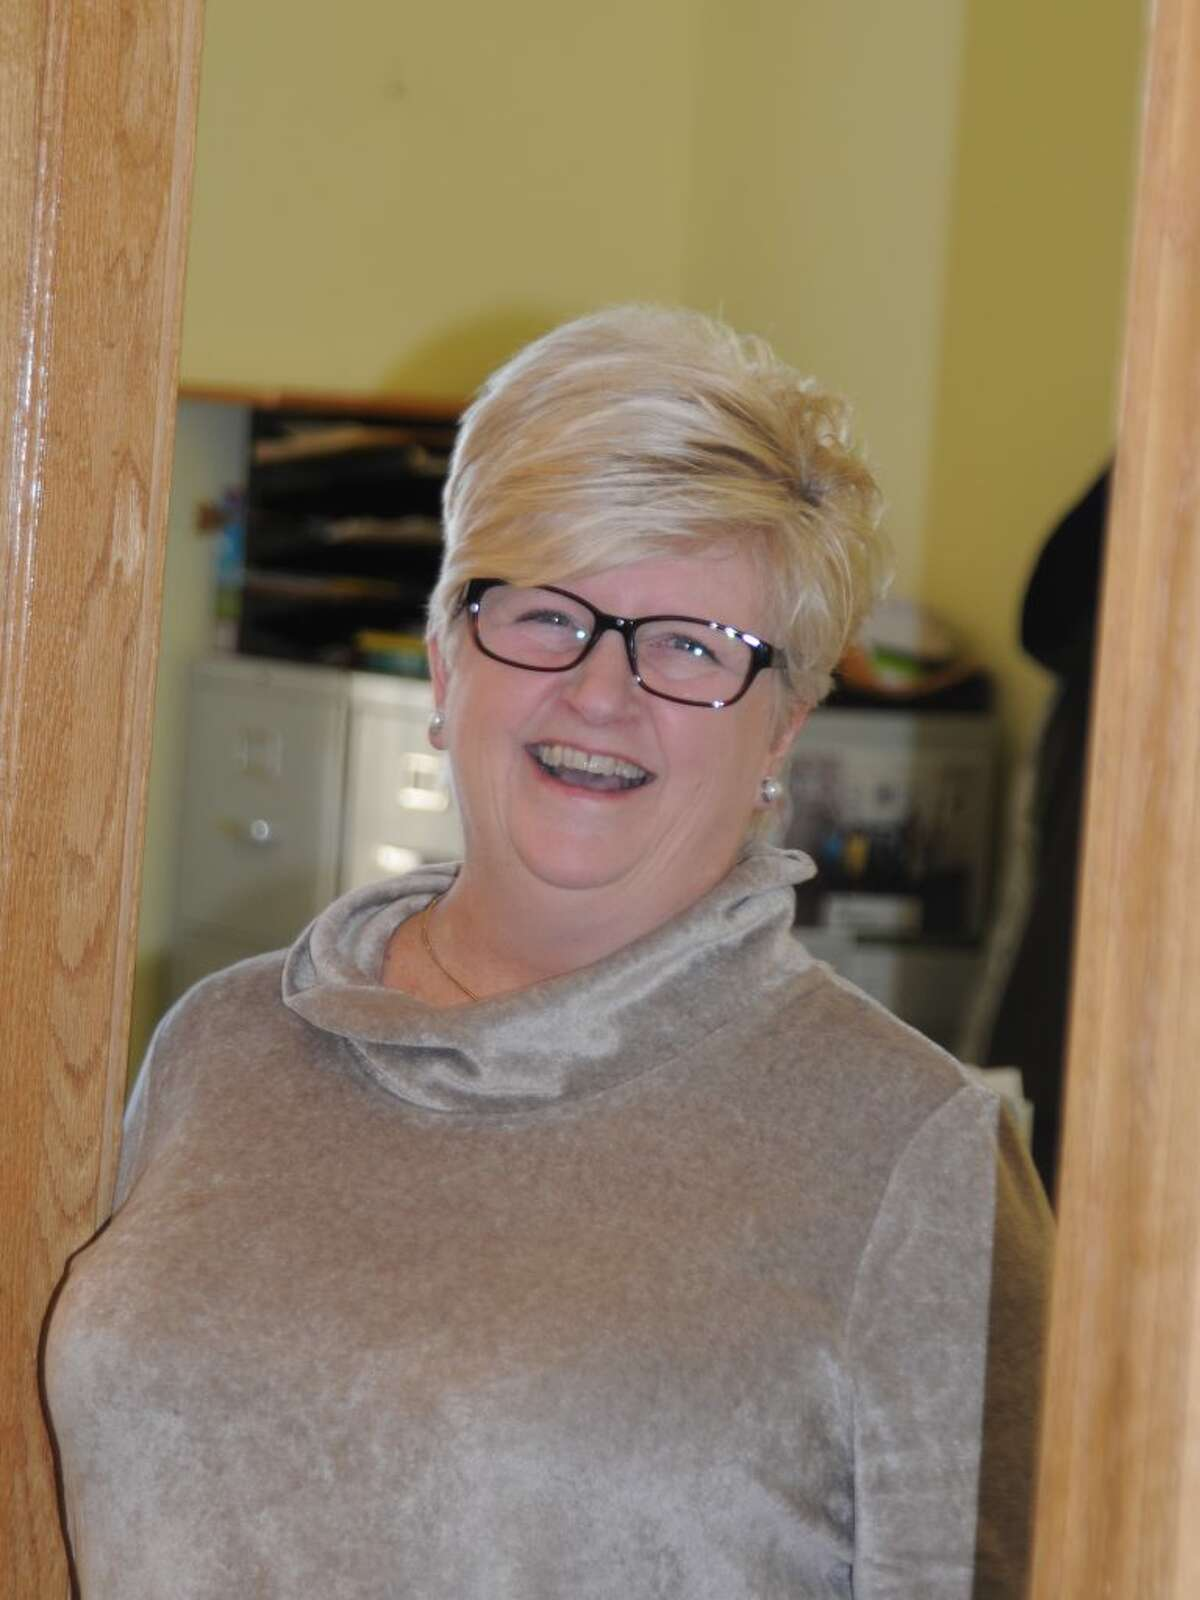 Karen Gaudian, the town's employee of the year, serves a variety of people working in the social services office. - Macklin Reid photo